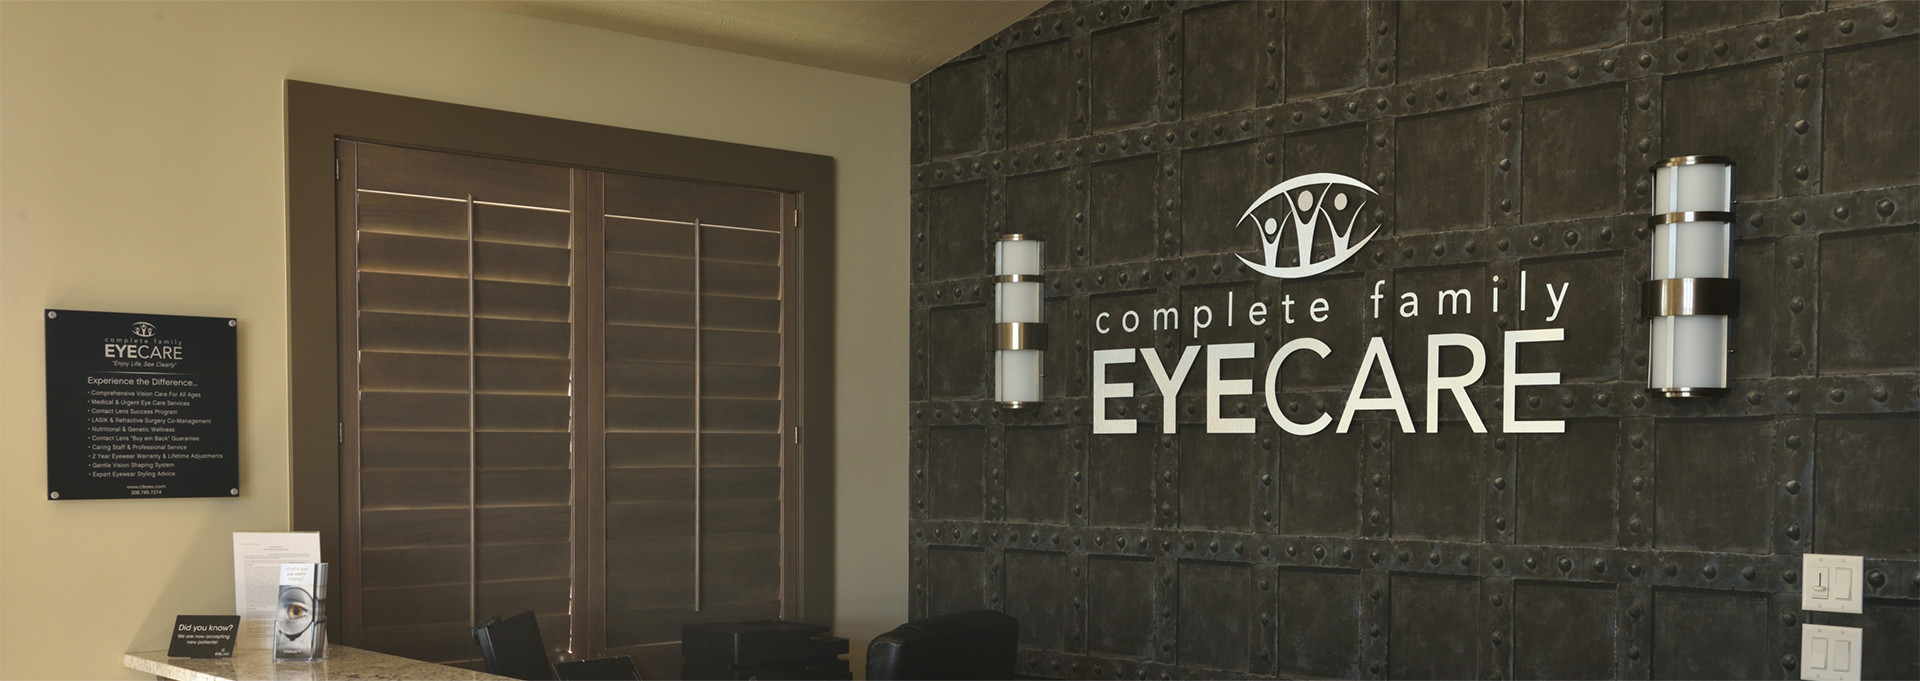 Privacy Policy | Eye Doctor in Blackfoot, ID